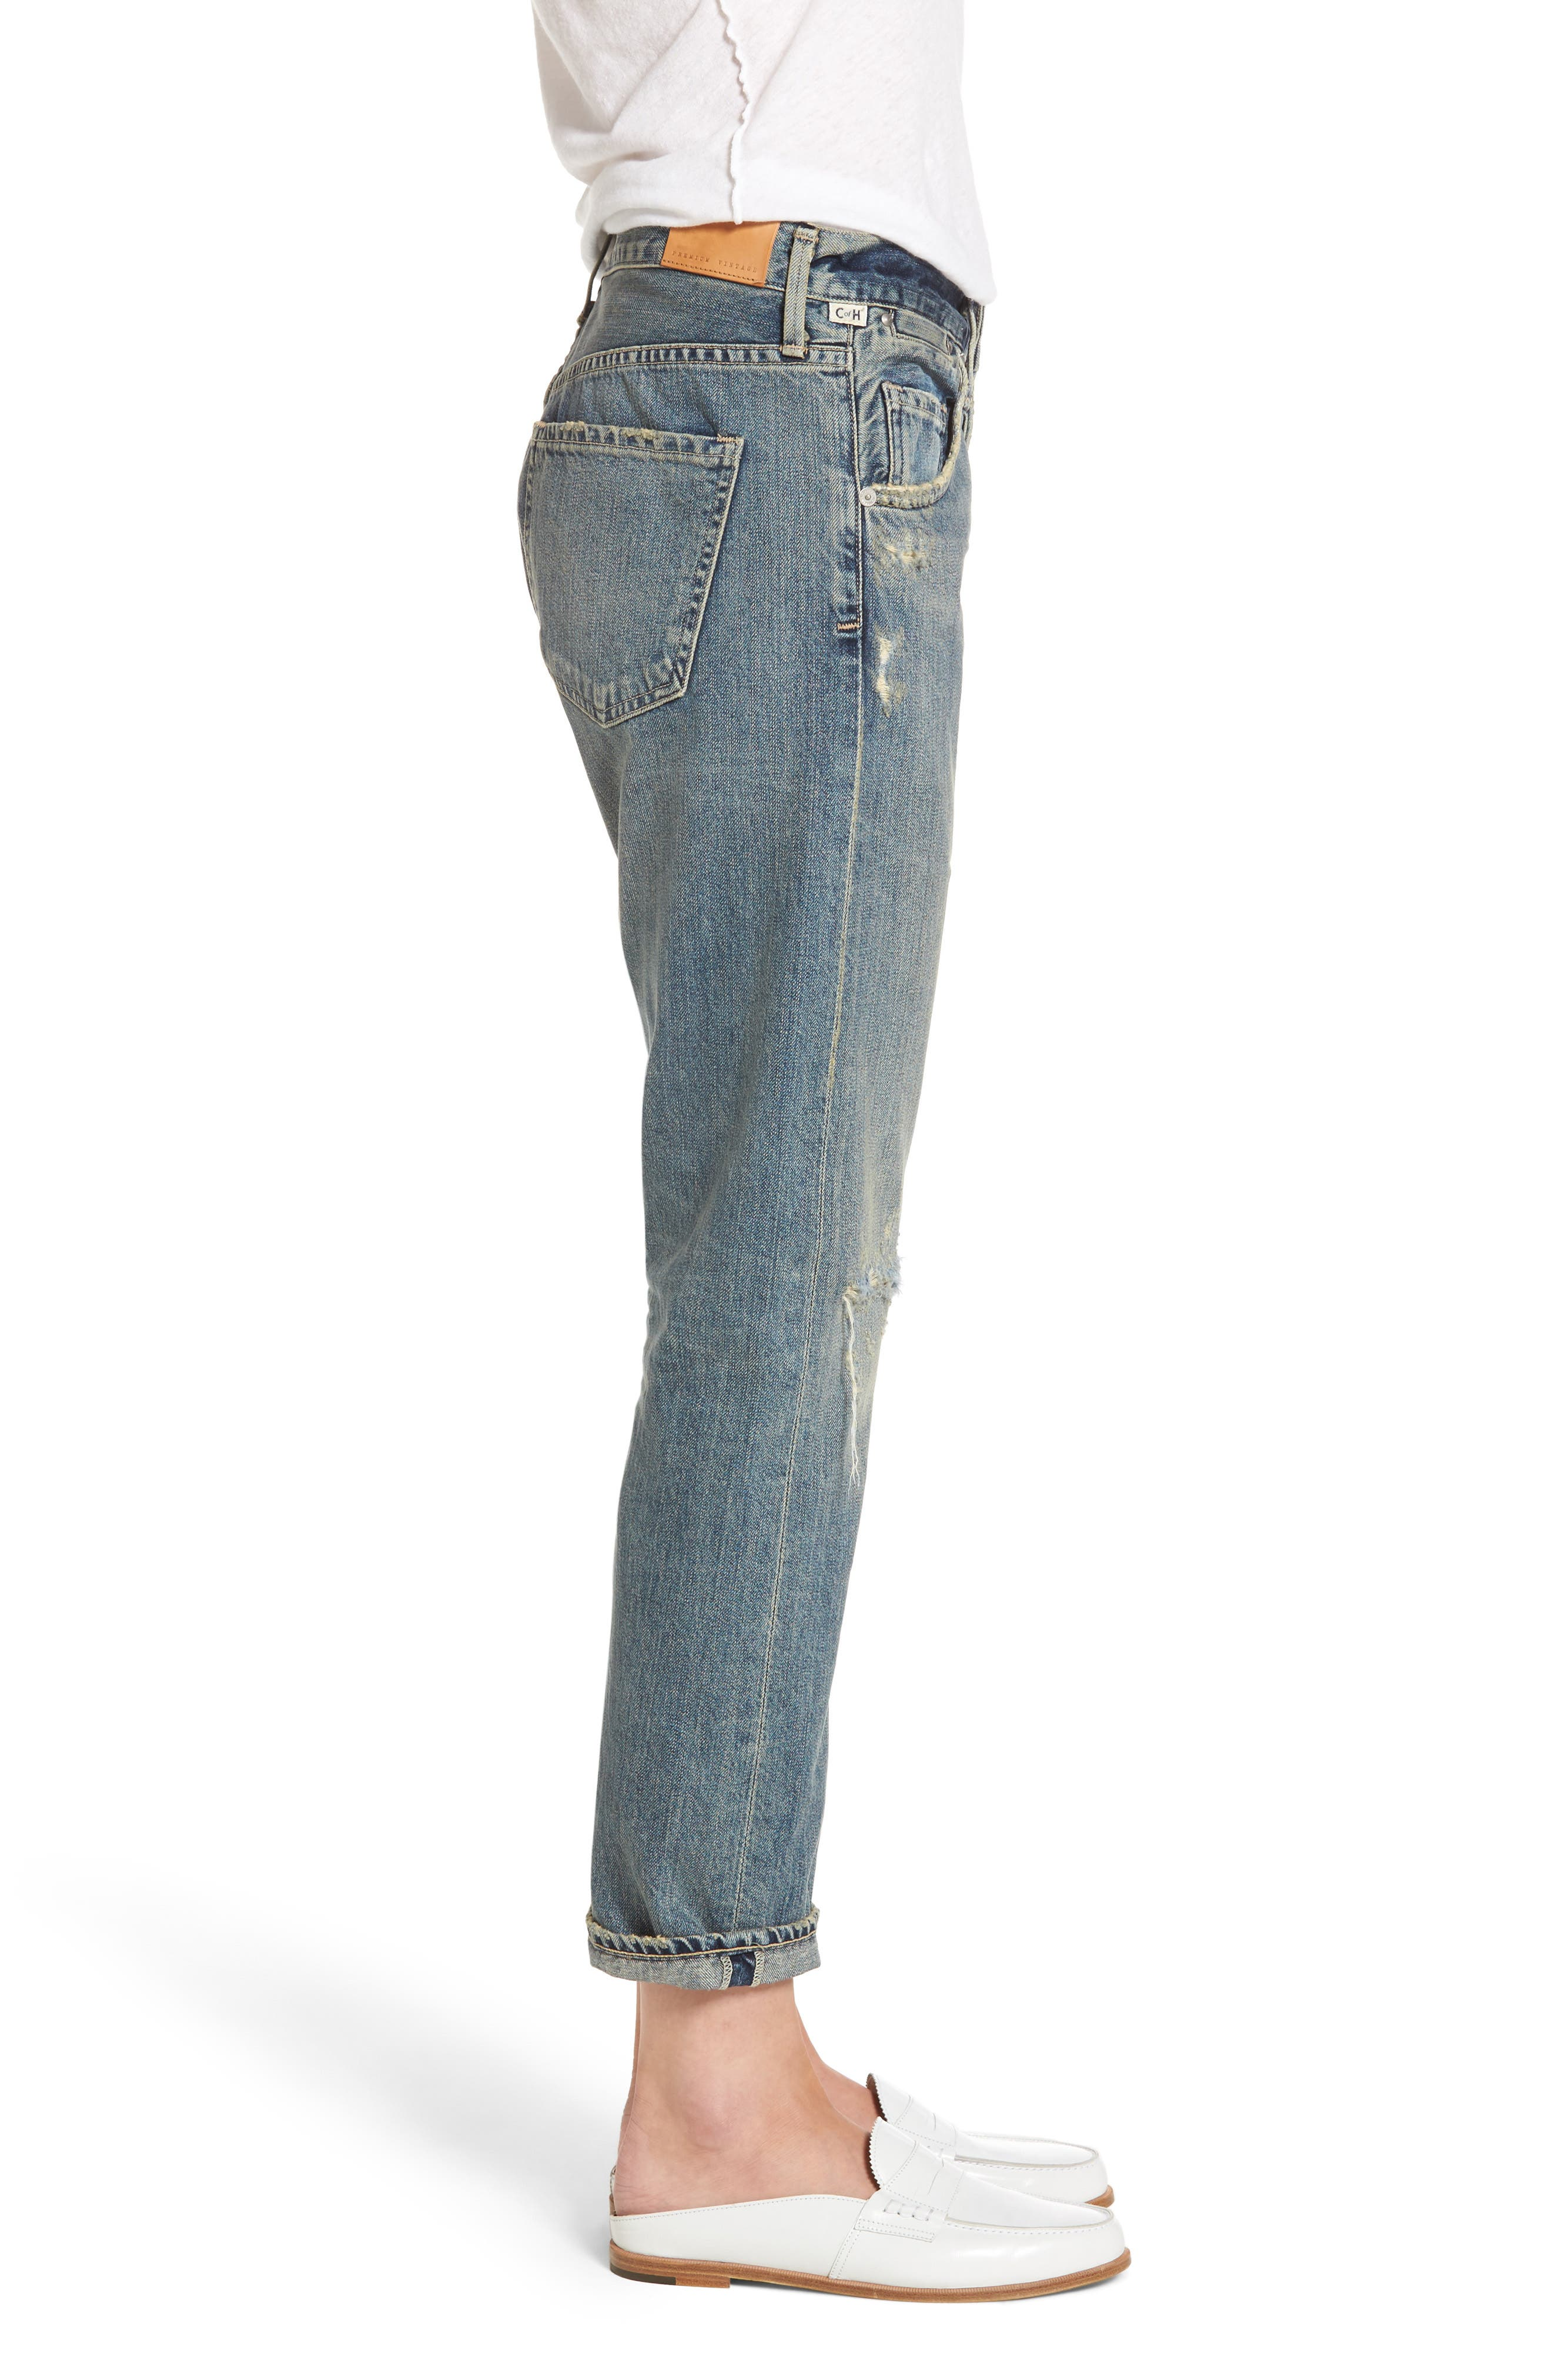 Alternate Image 3  - Citizens of Humanity Emerson Ripped Slim Boyfriend Jeans (Norlander)